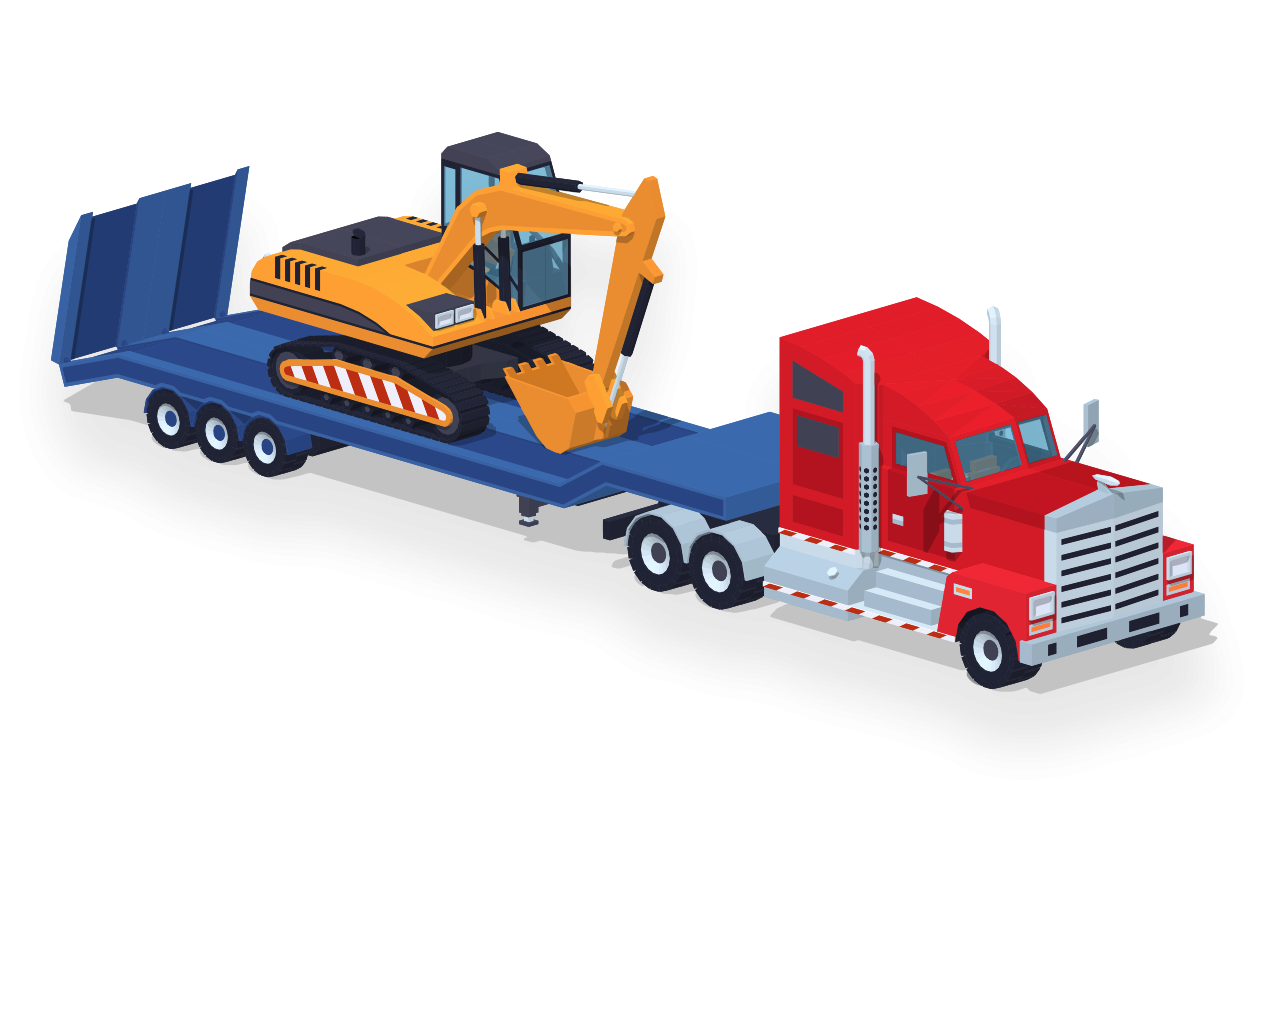 Infor CloudSuite ERP software for the Equipment industry